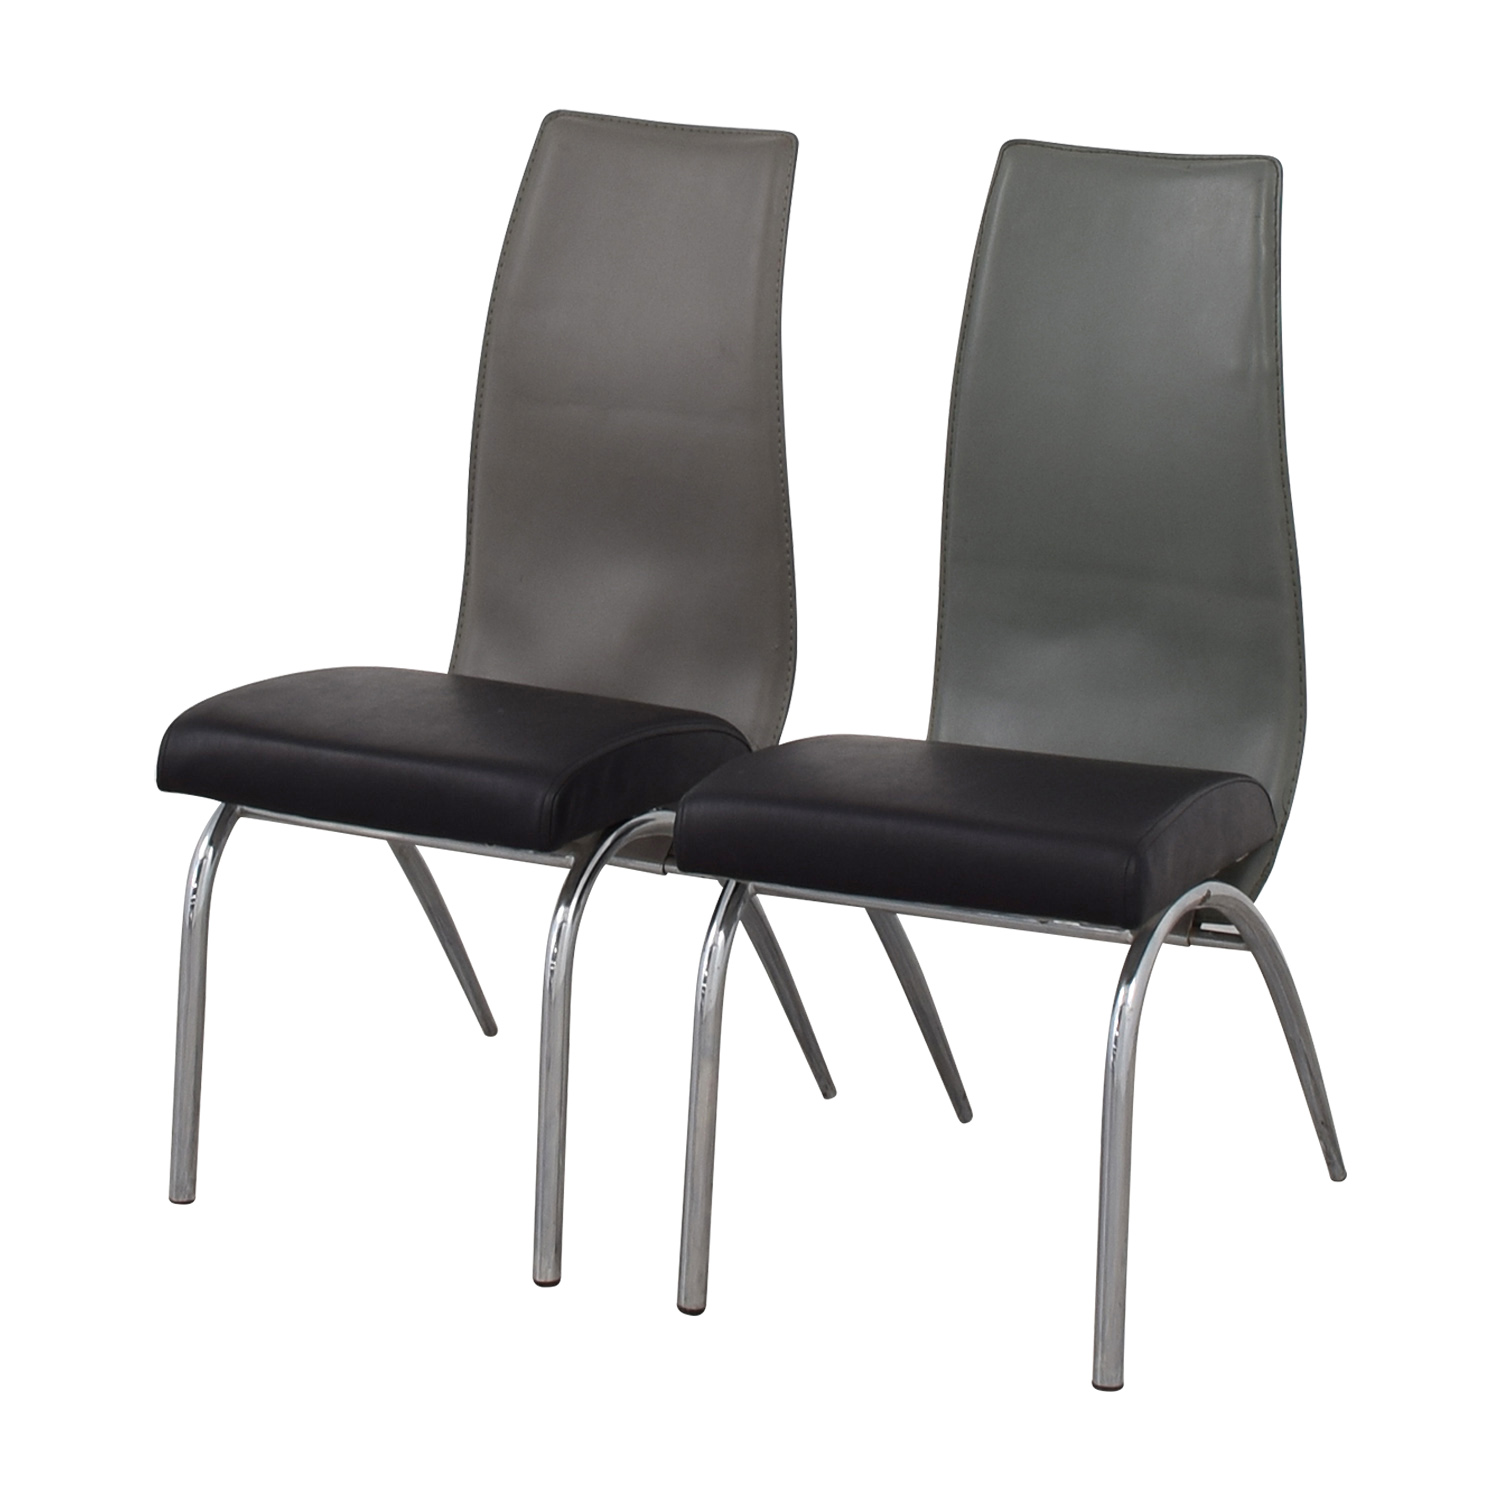 modern gray dining chairs chair covers for sale uk 90 off esf black and grey